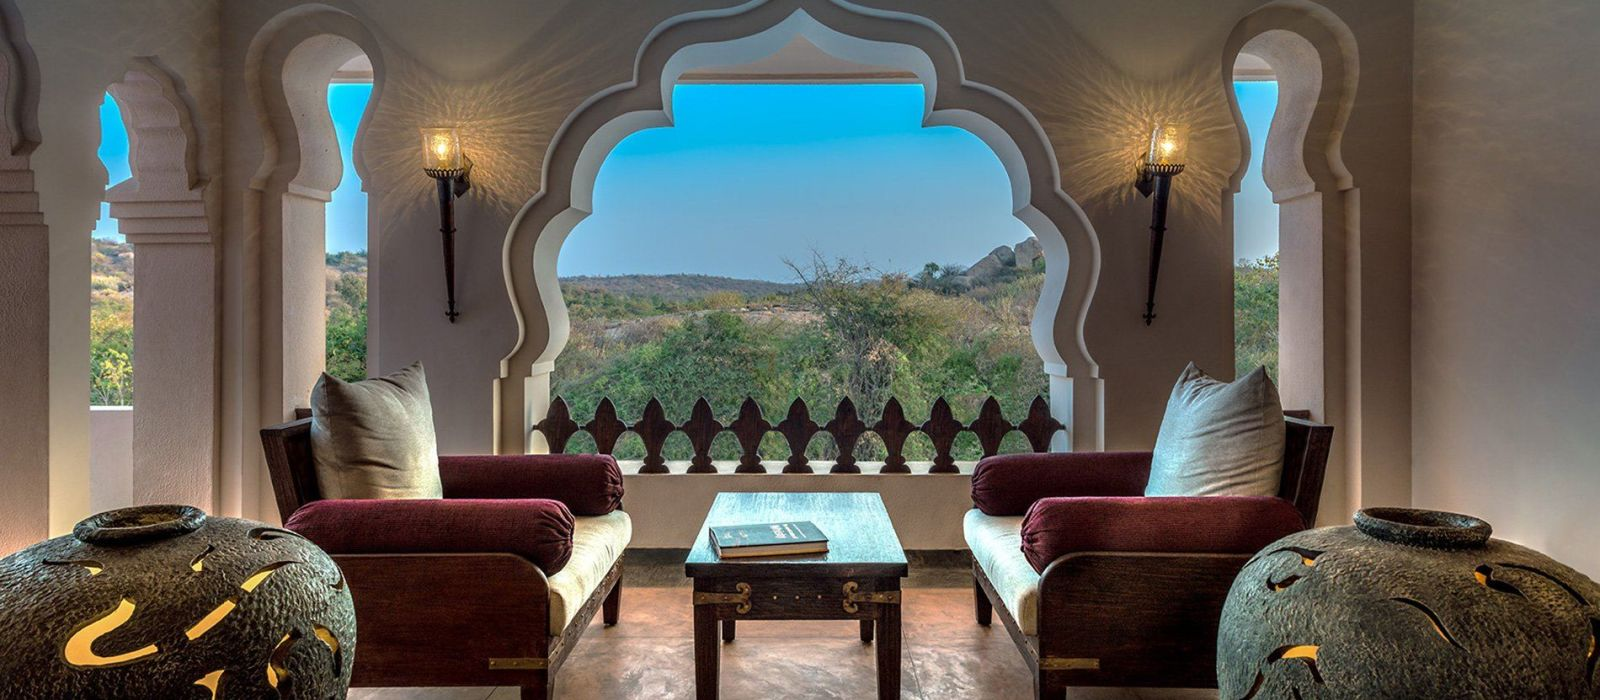 Hotel Evolve Back Kamalapura Palace Hampi South India